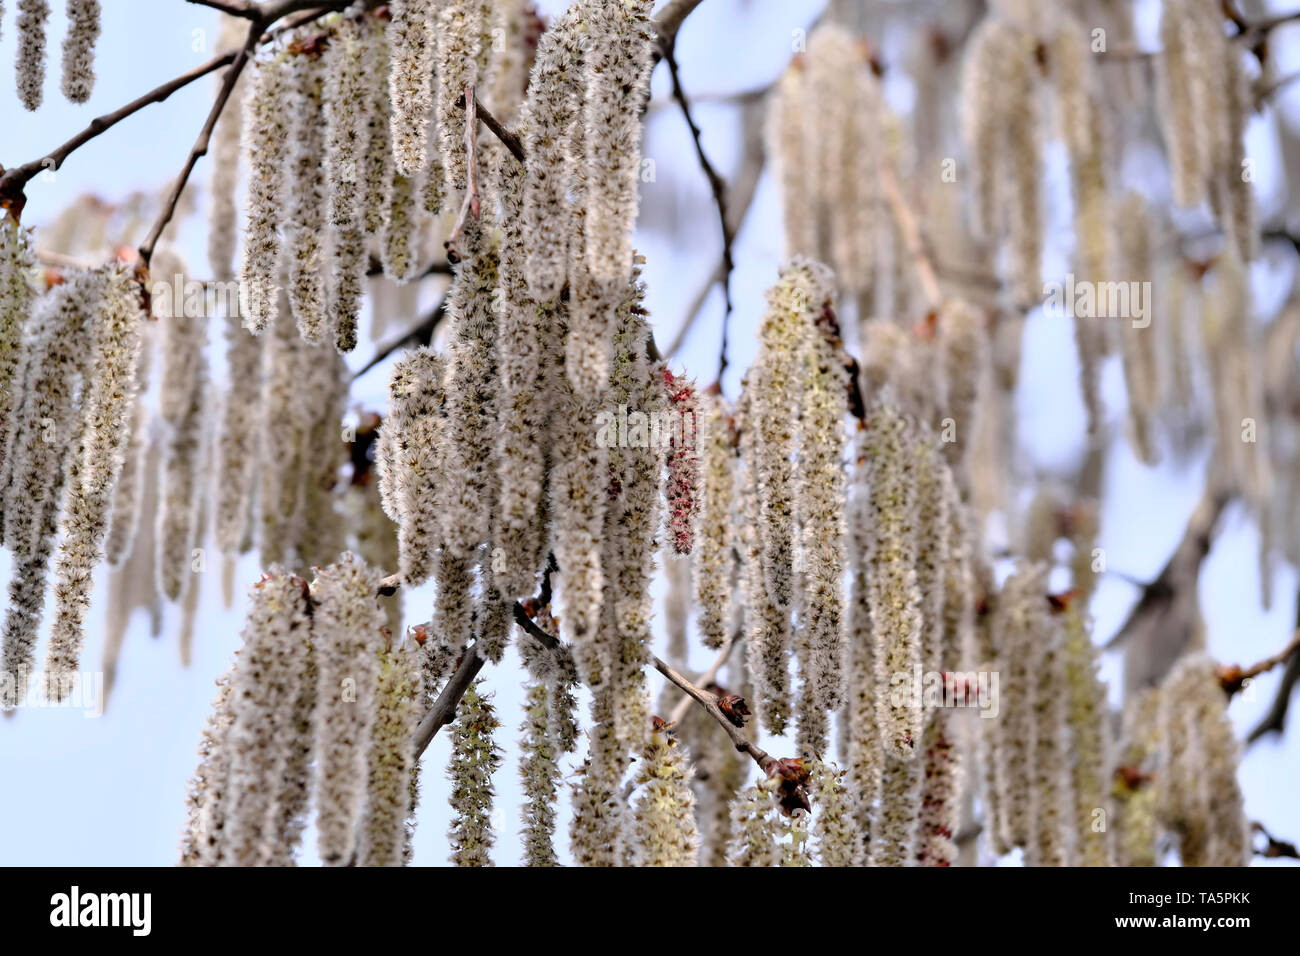 Male flowers of black alder deciduous trees of the birch family close-up macro photography - Stock Image